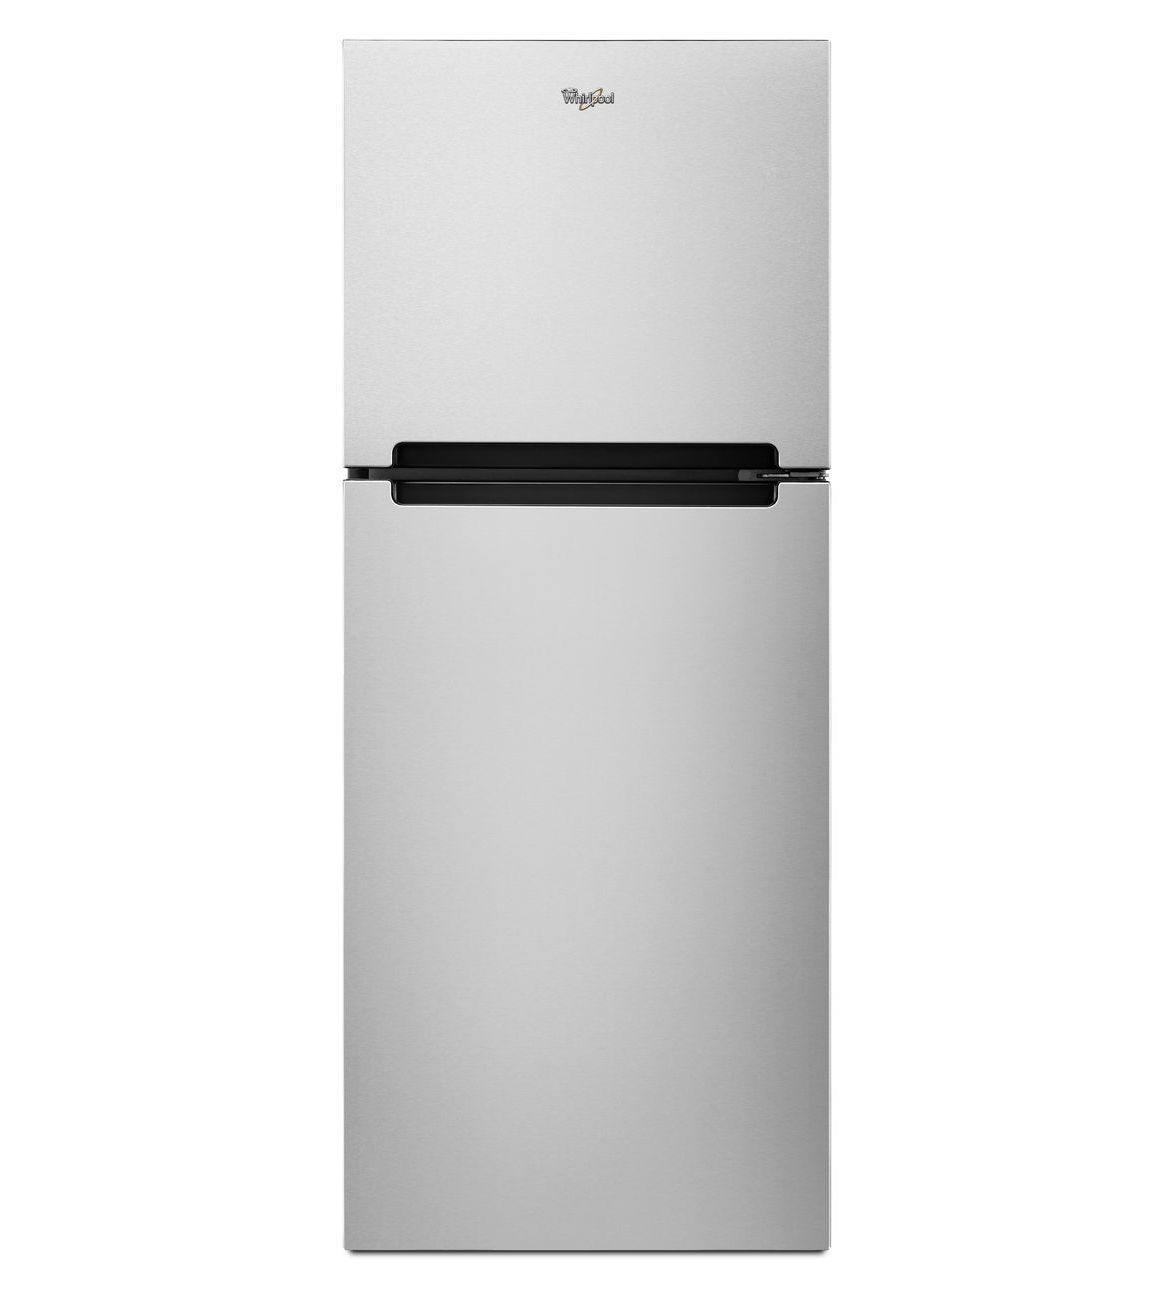 Whirlpool 25inches wide Top Freezer Refrigerator 11 cu ft